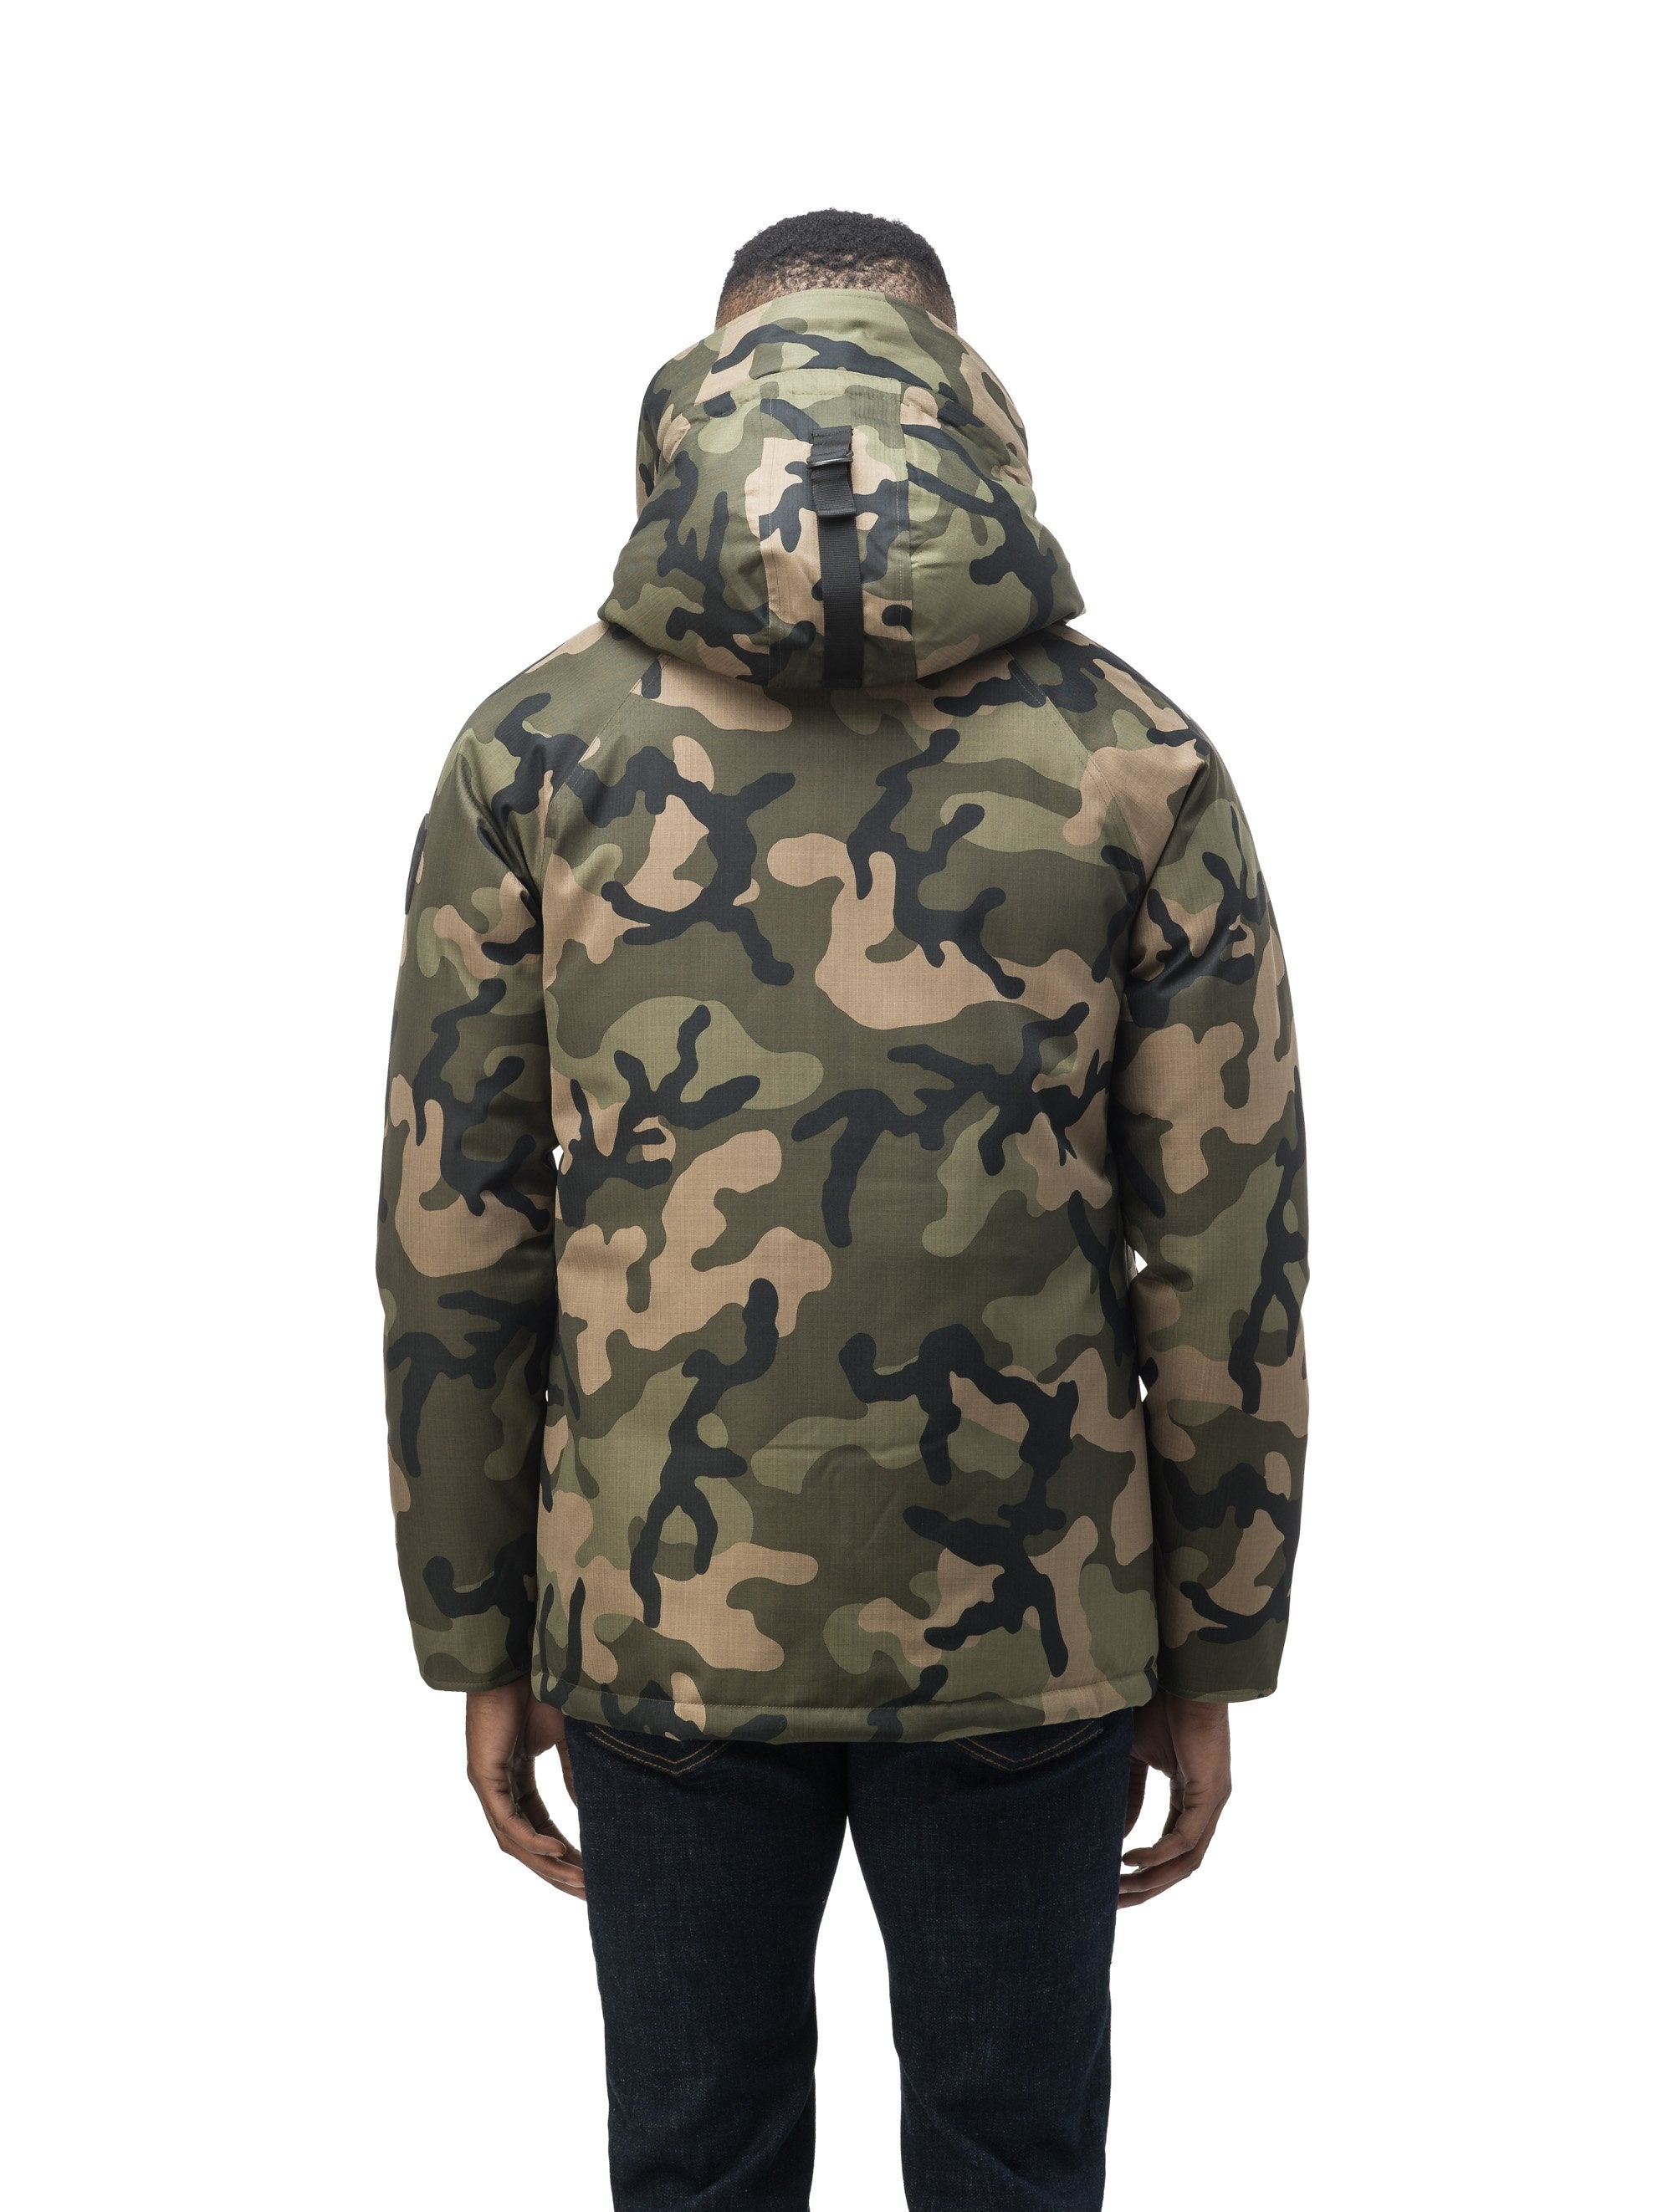 Men's waist length down filled jacket with two front pockets with magnetic closure and a removable fur trim on the hood in CH Camo | color